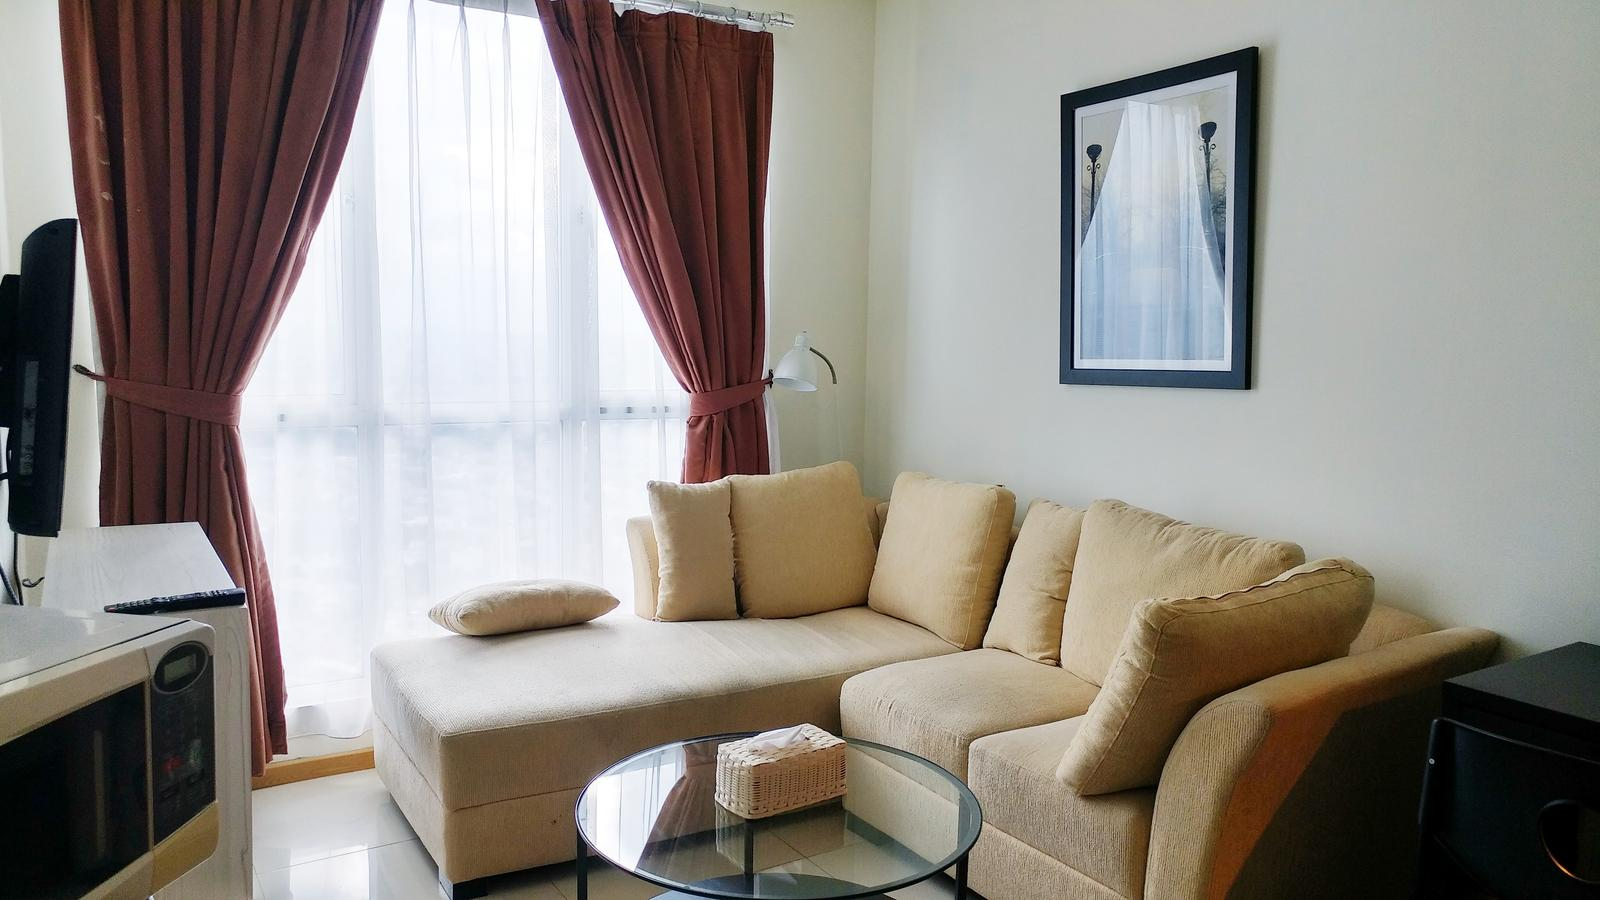 Gandaria Heights - 2BR Cityview At Gandaria Heights Apartment By Travelio